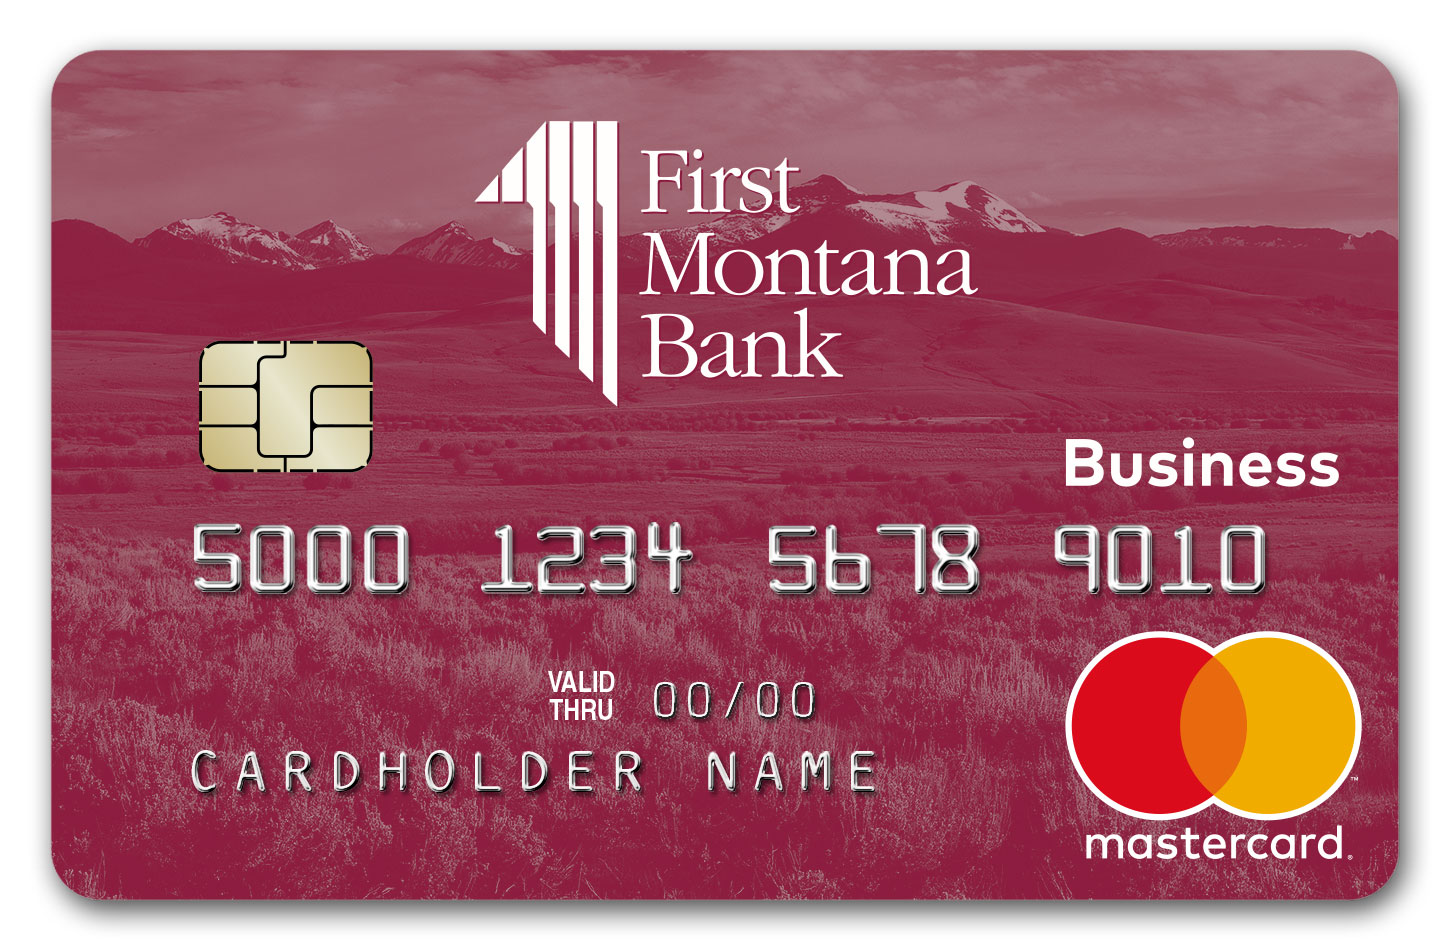 First montana bank mastercard card magicingreecefo Images